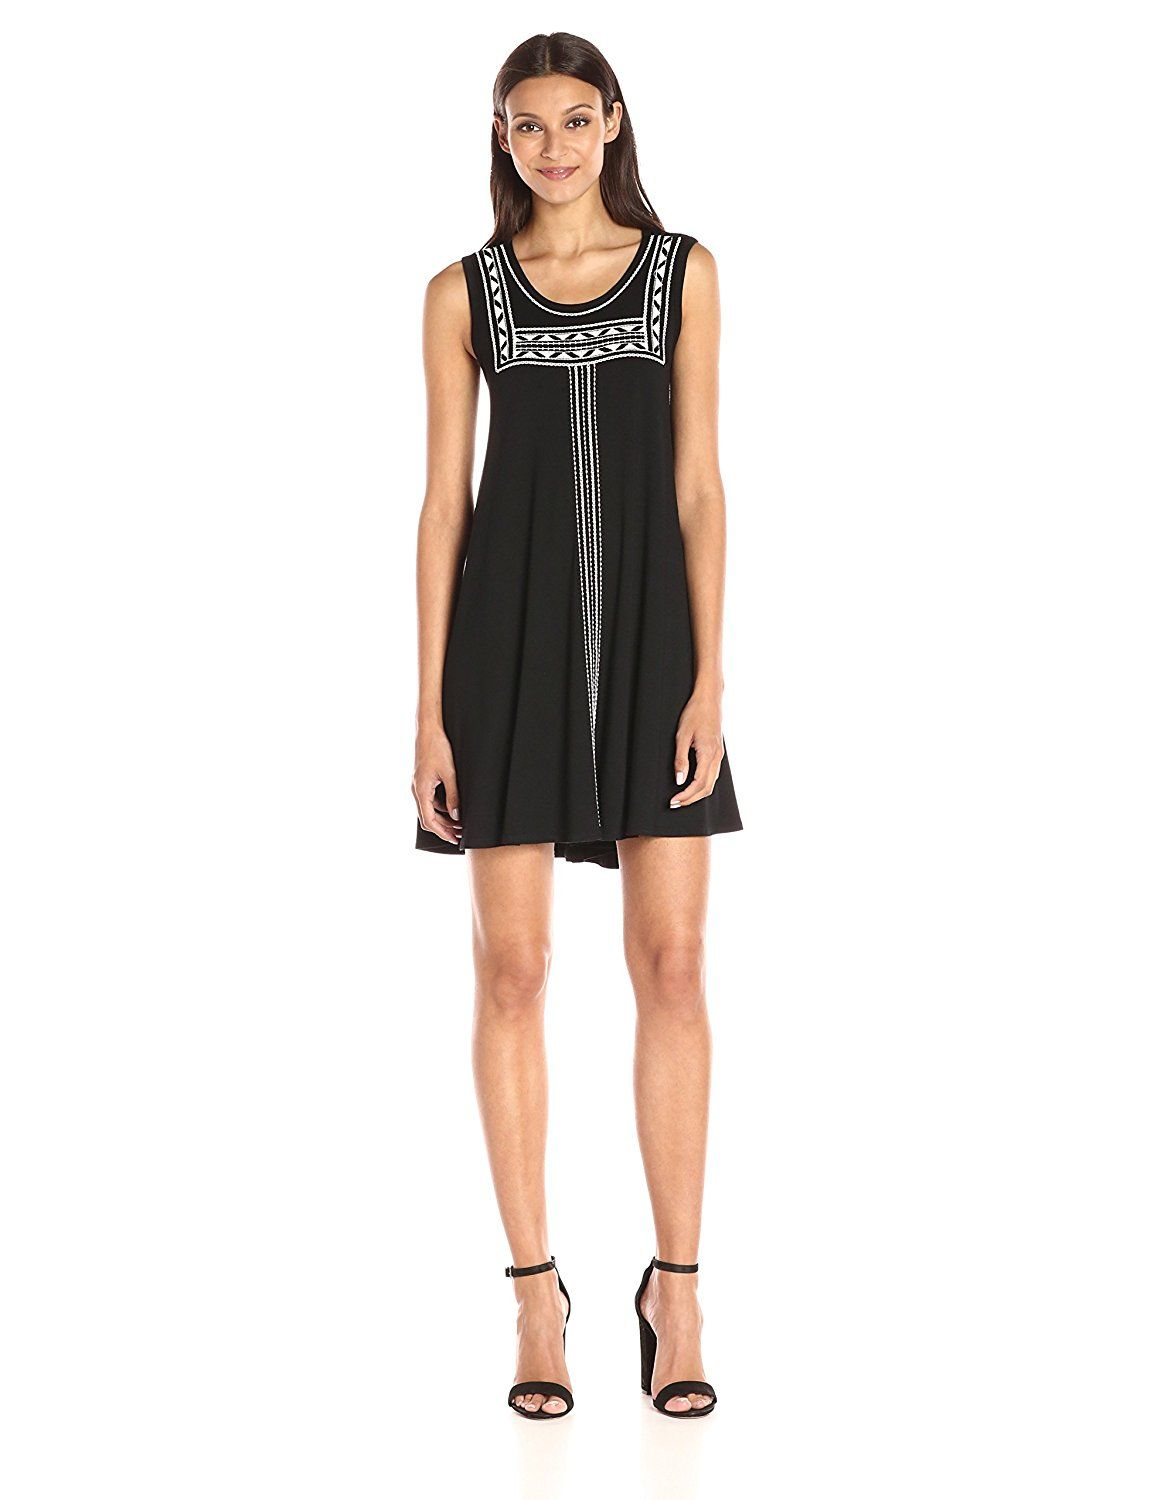 e15d9848c2413 Karen Kane Women s Embroidered Sleeveless Trapeze Dress   Find out more  details by clicking the image   black dress